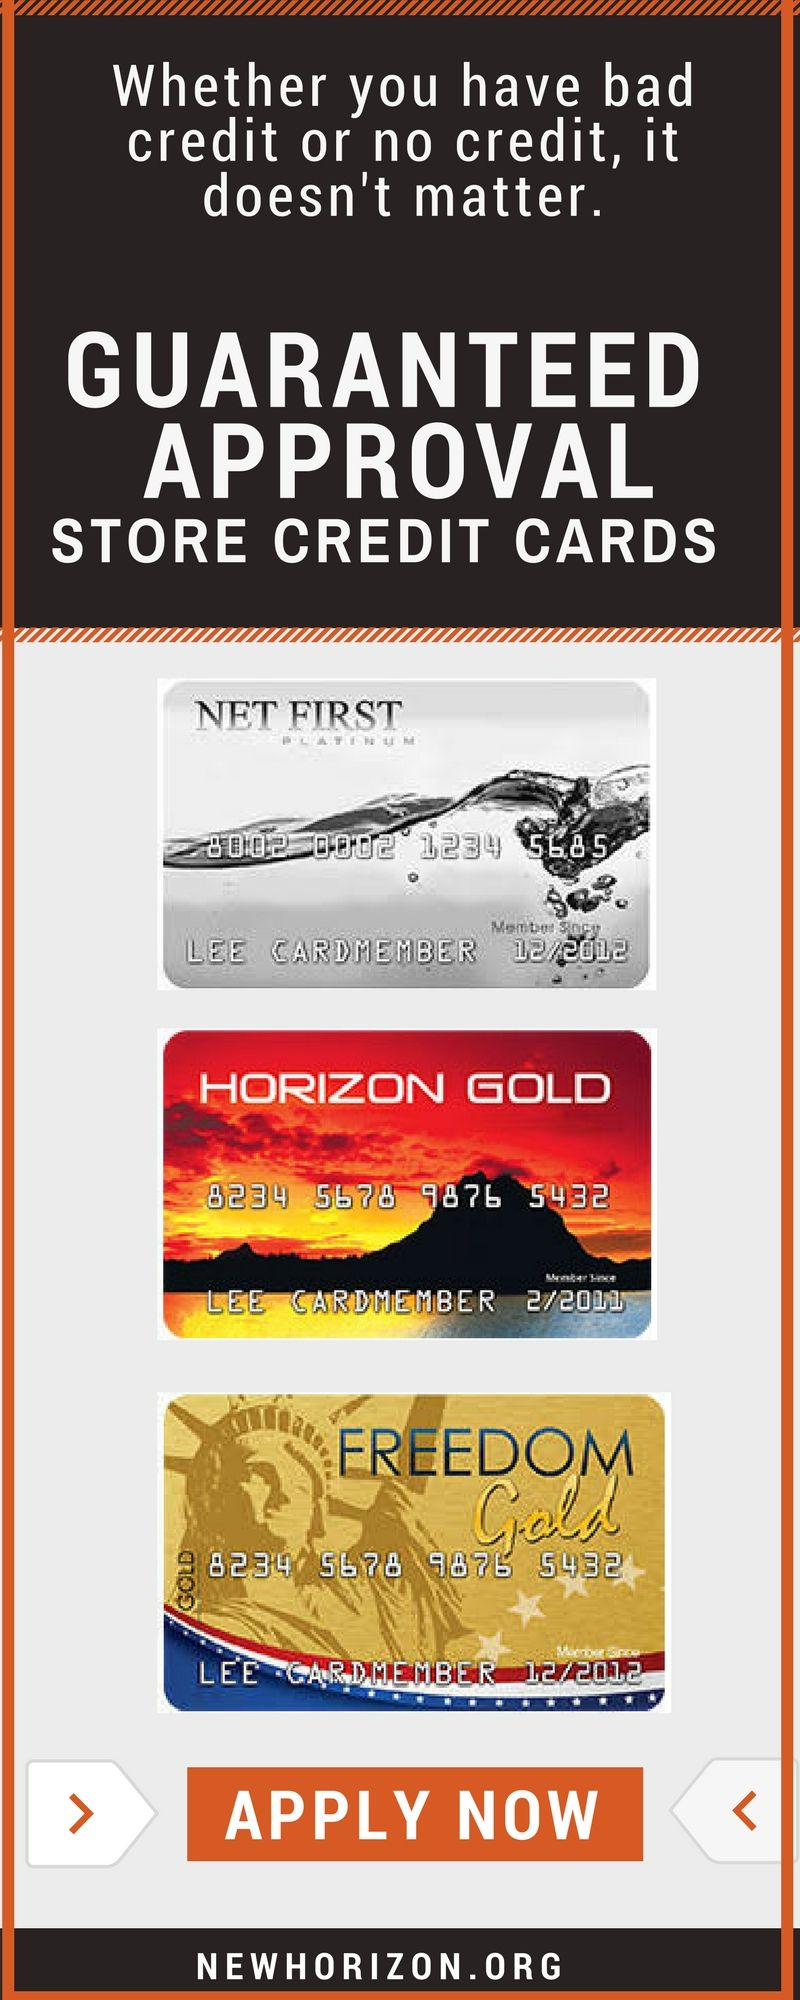 Merchandise Cards Catalog Credit Cards Bad Credit Credit Cards Consolidate Credit Card Debt Credit Card Consolidation